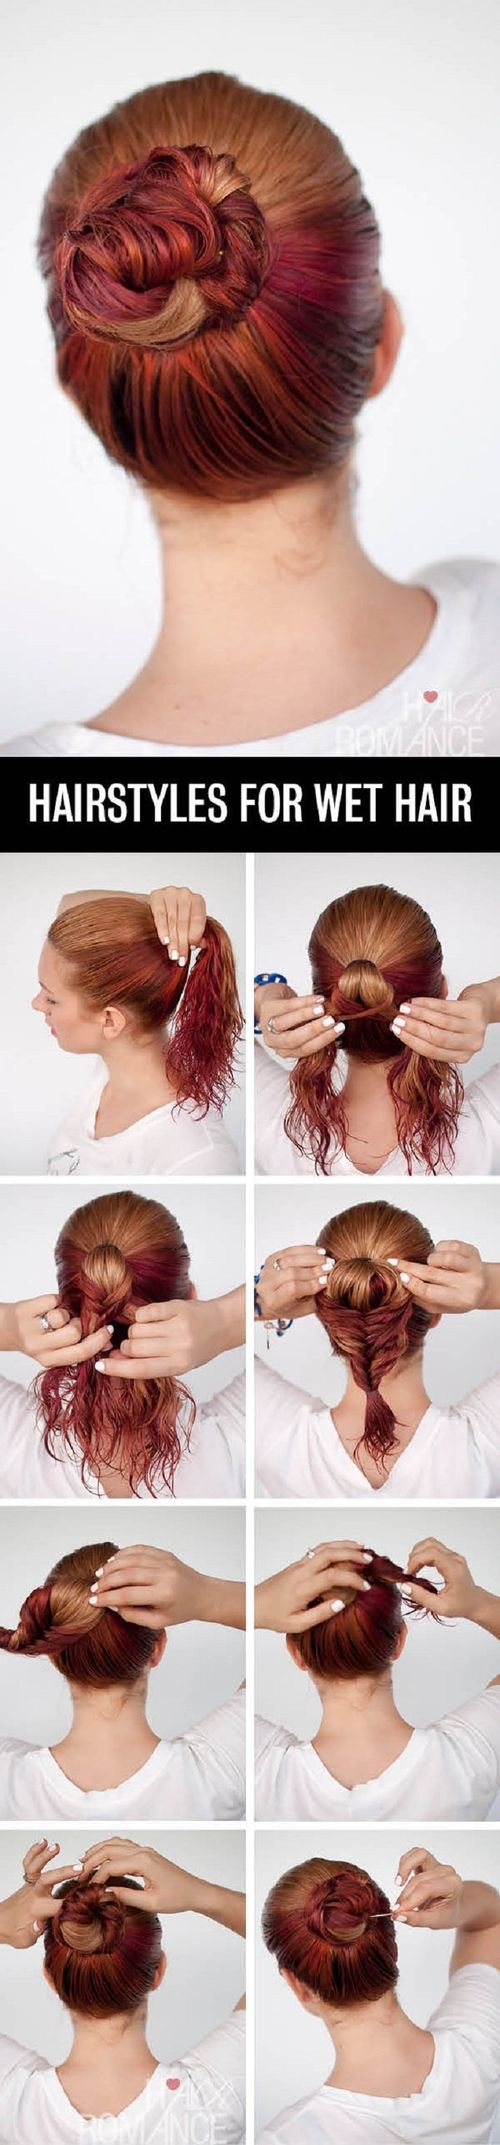 Fast Ways To Make A Wet Hairstyle